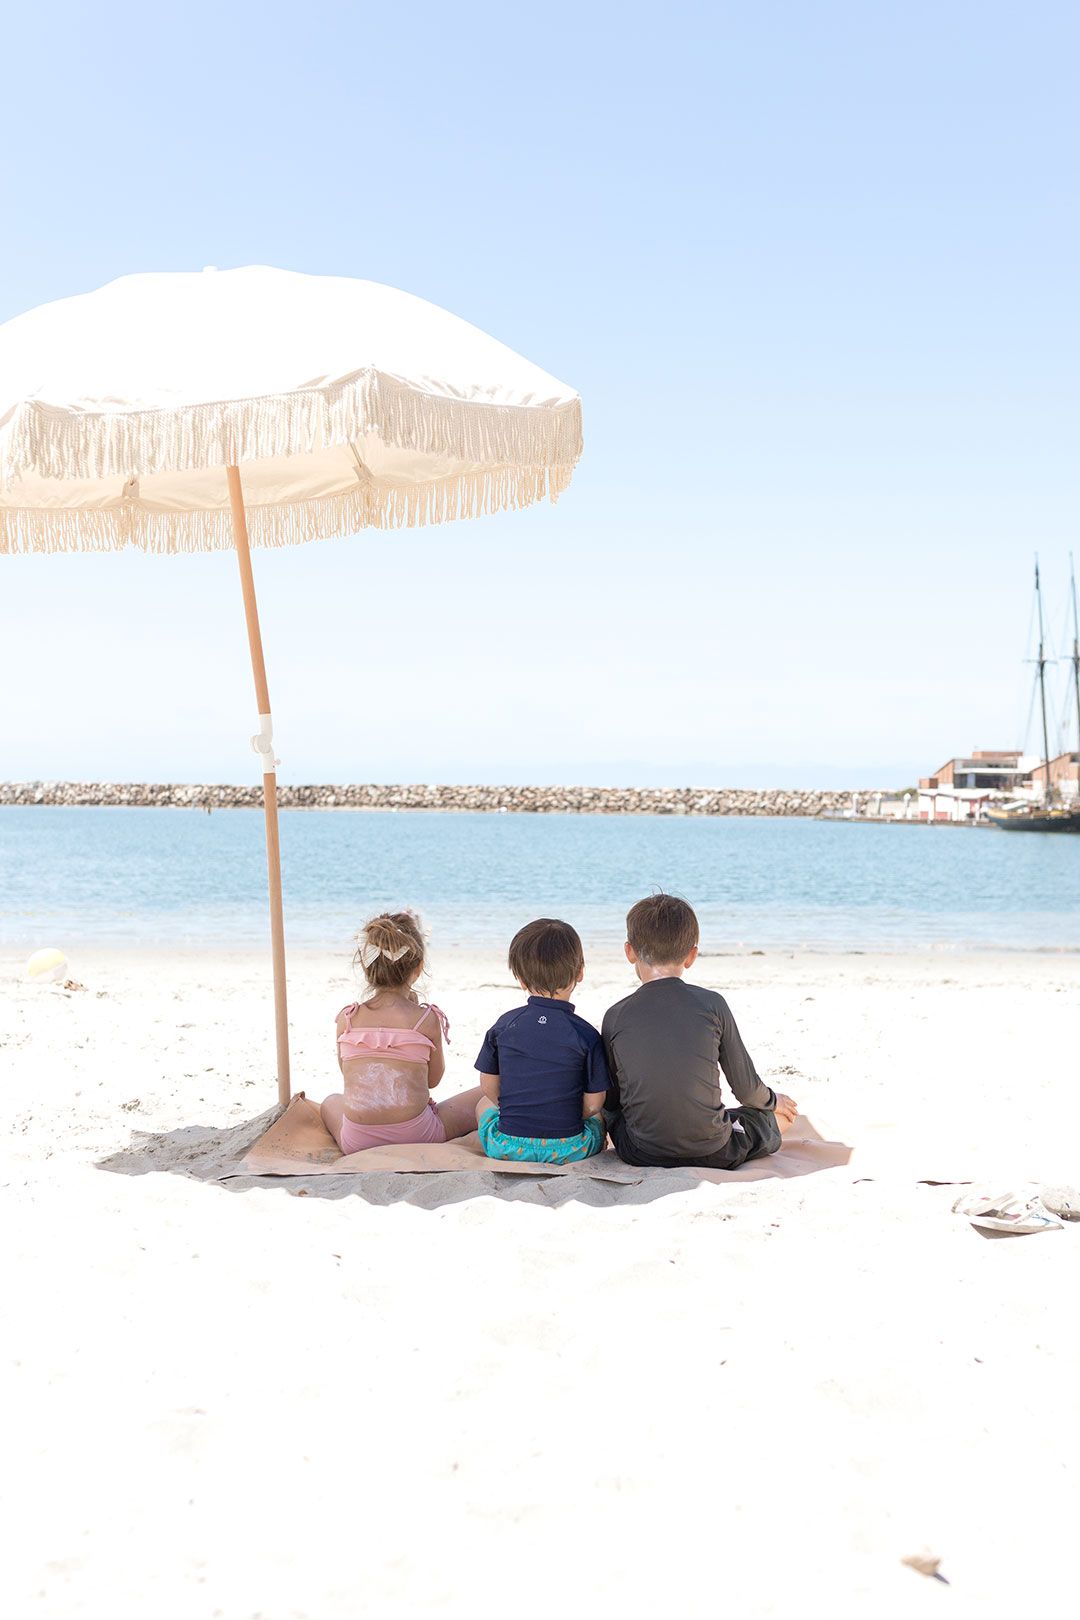 three kids sitting on the beach under an umbrella